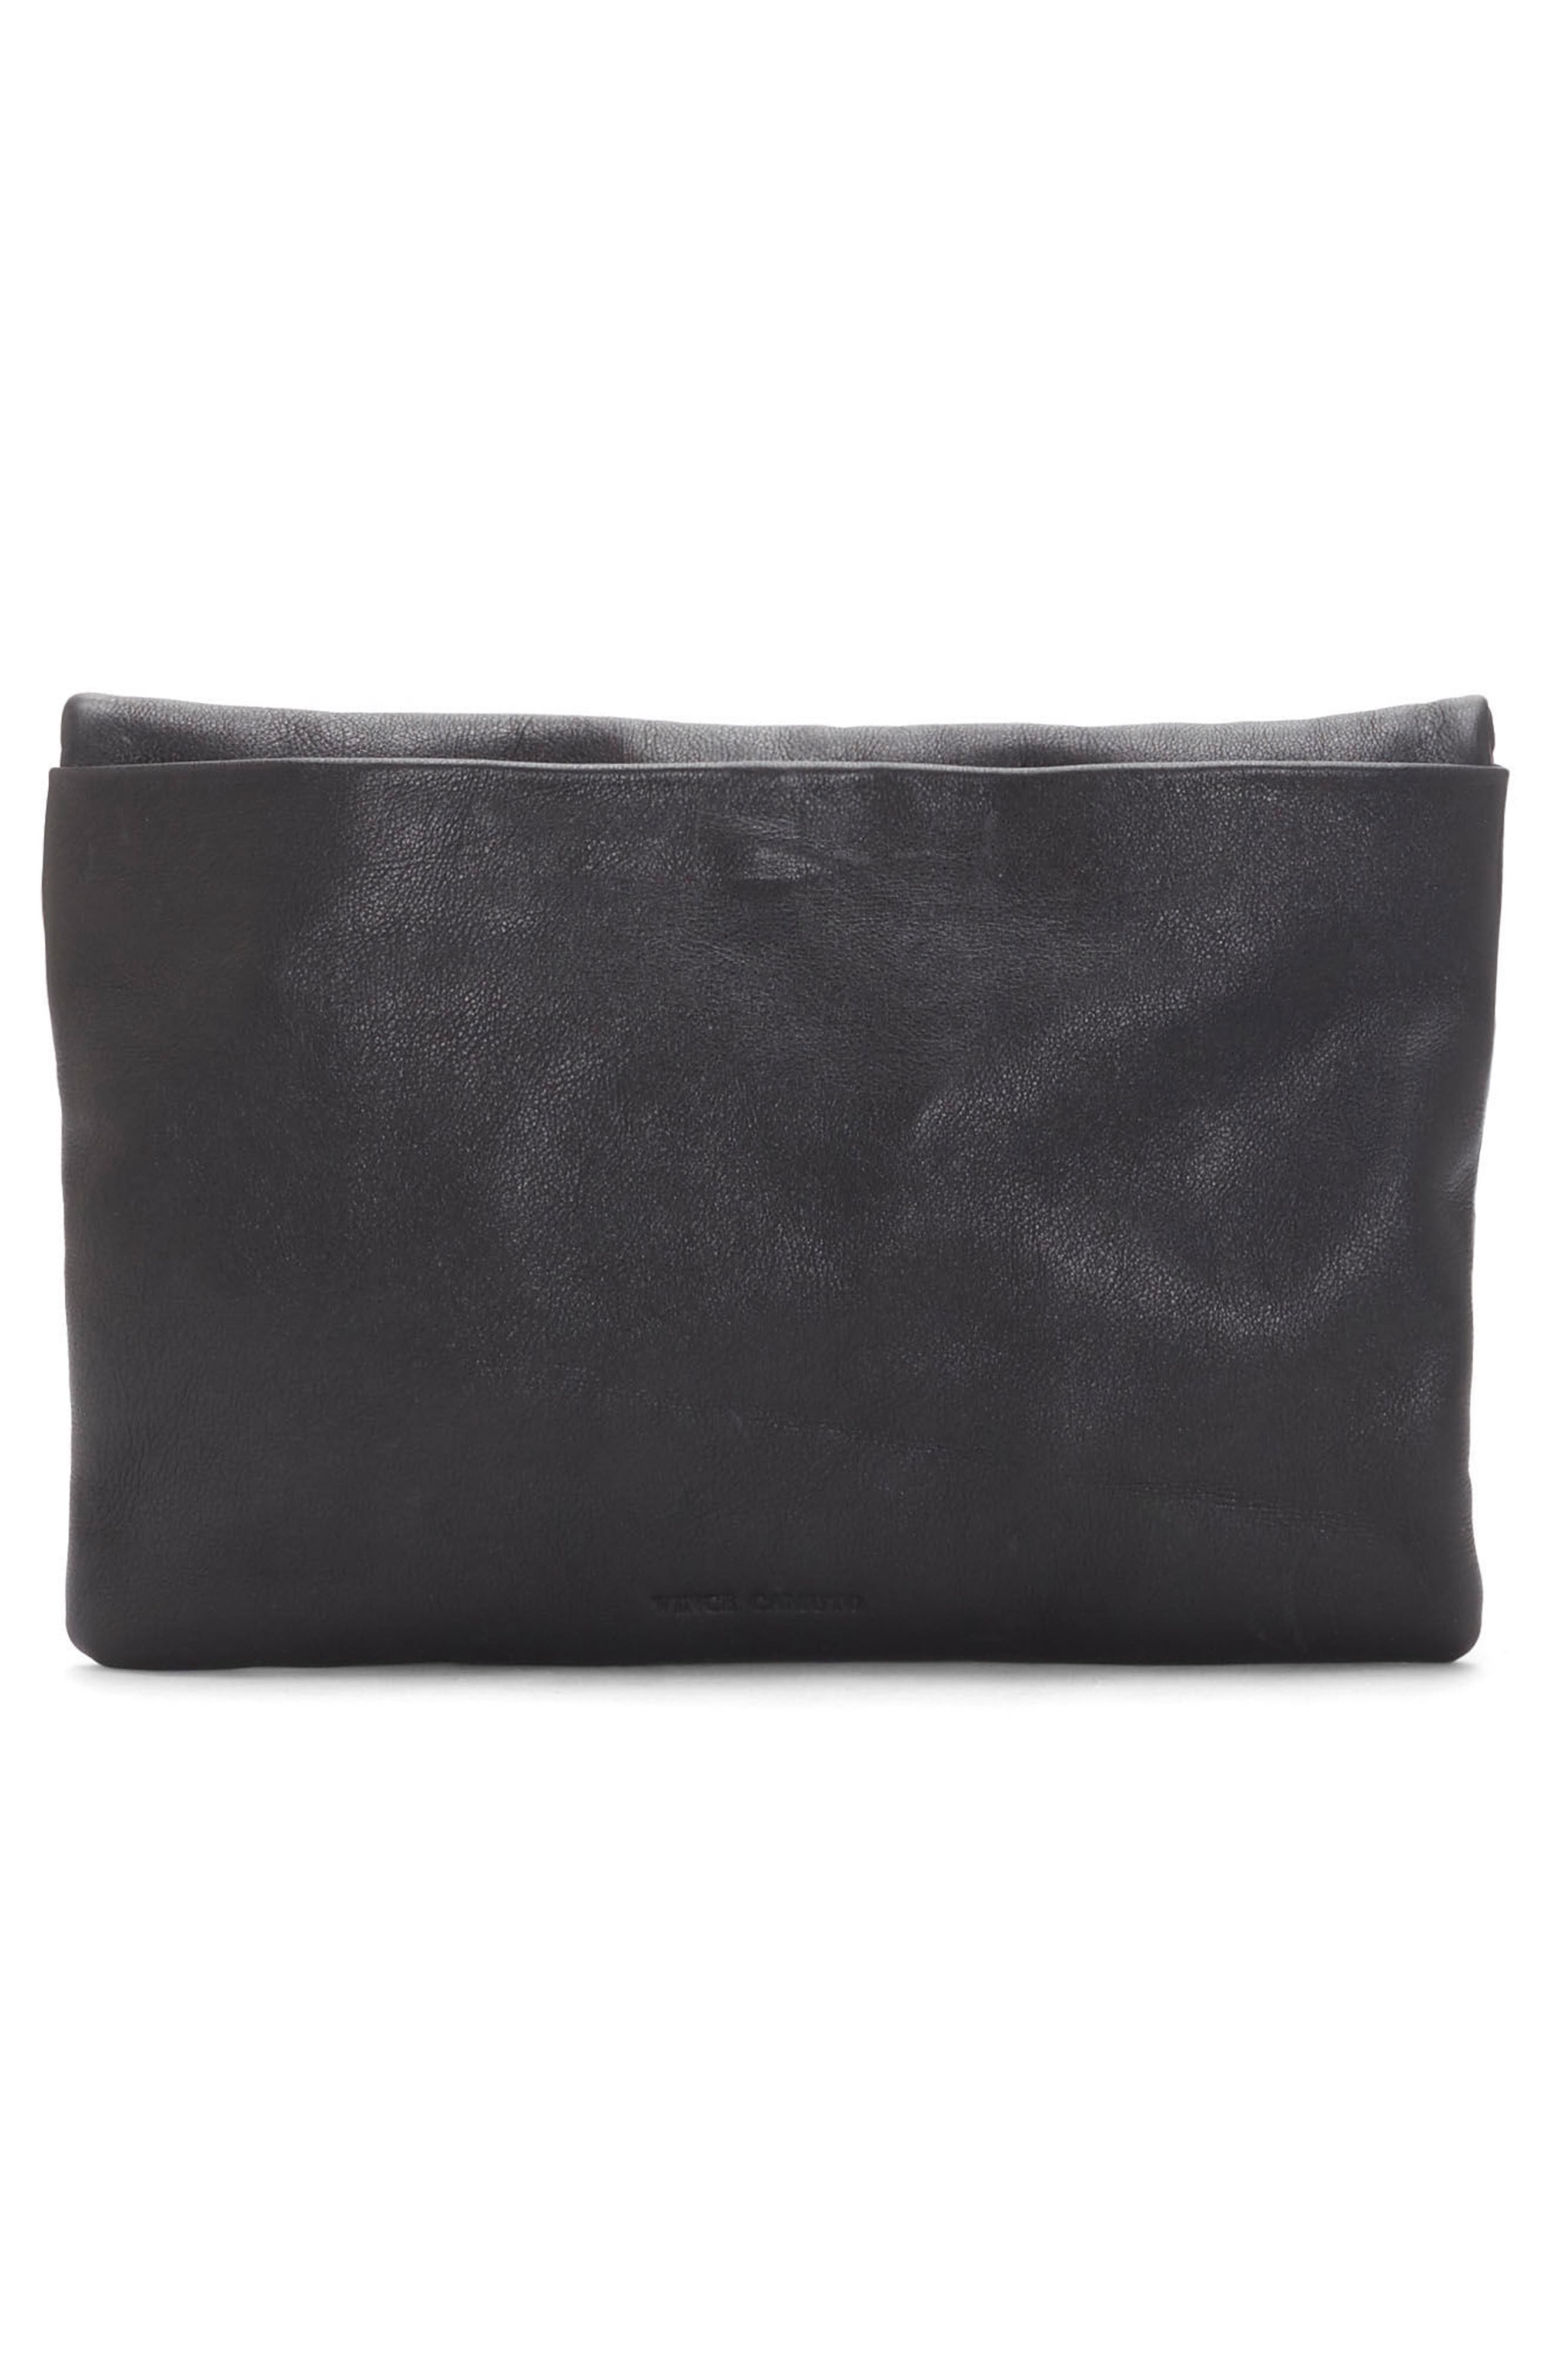 Luk Leather Foldover Clutch,                             Alternate thumbnail 2, color,